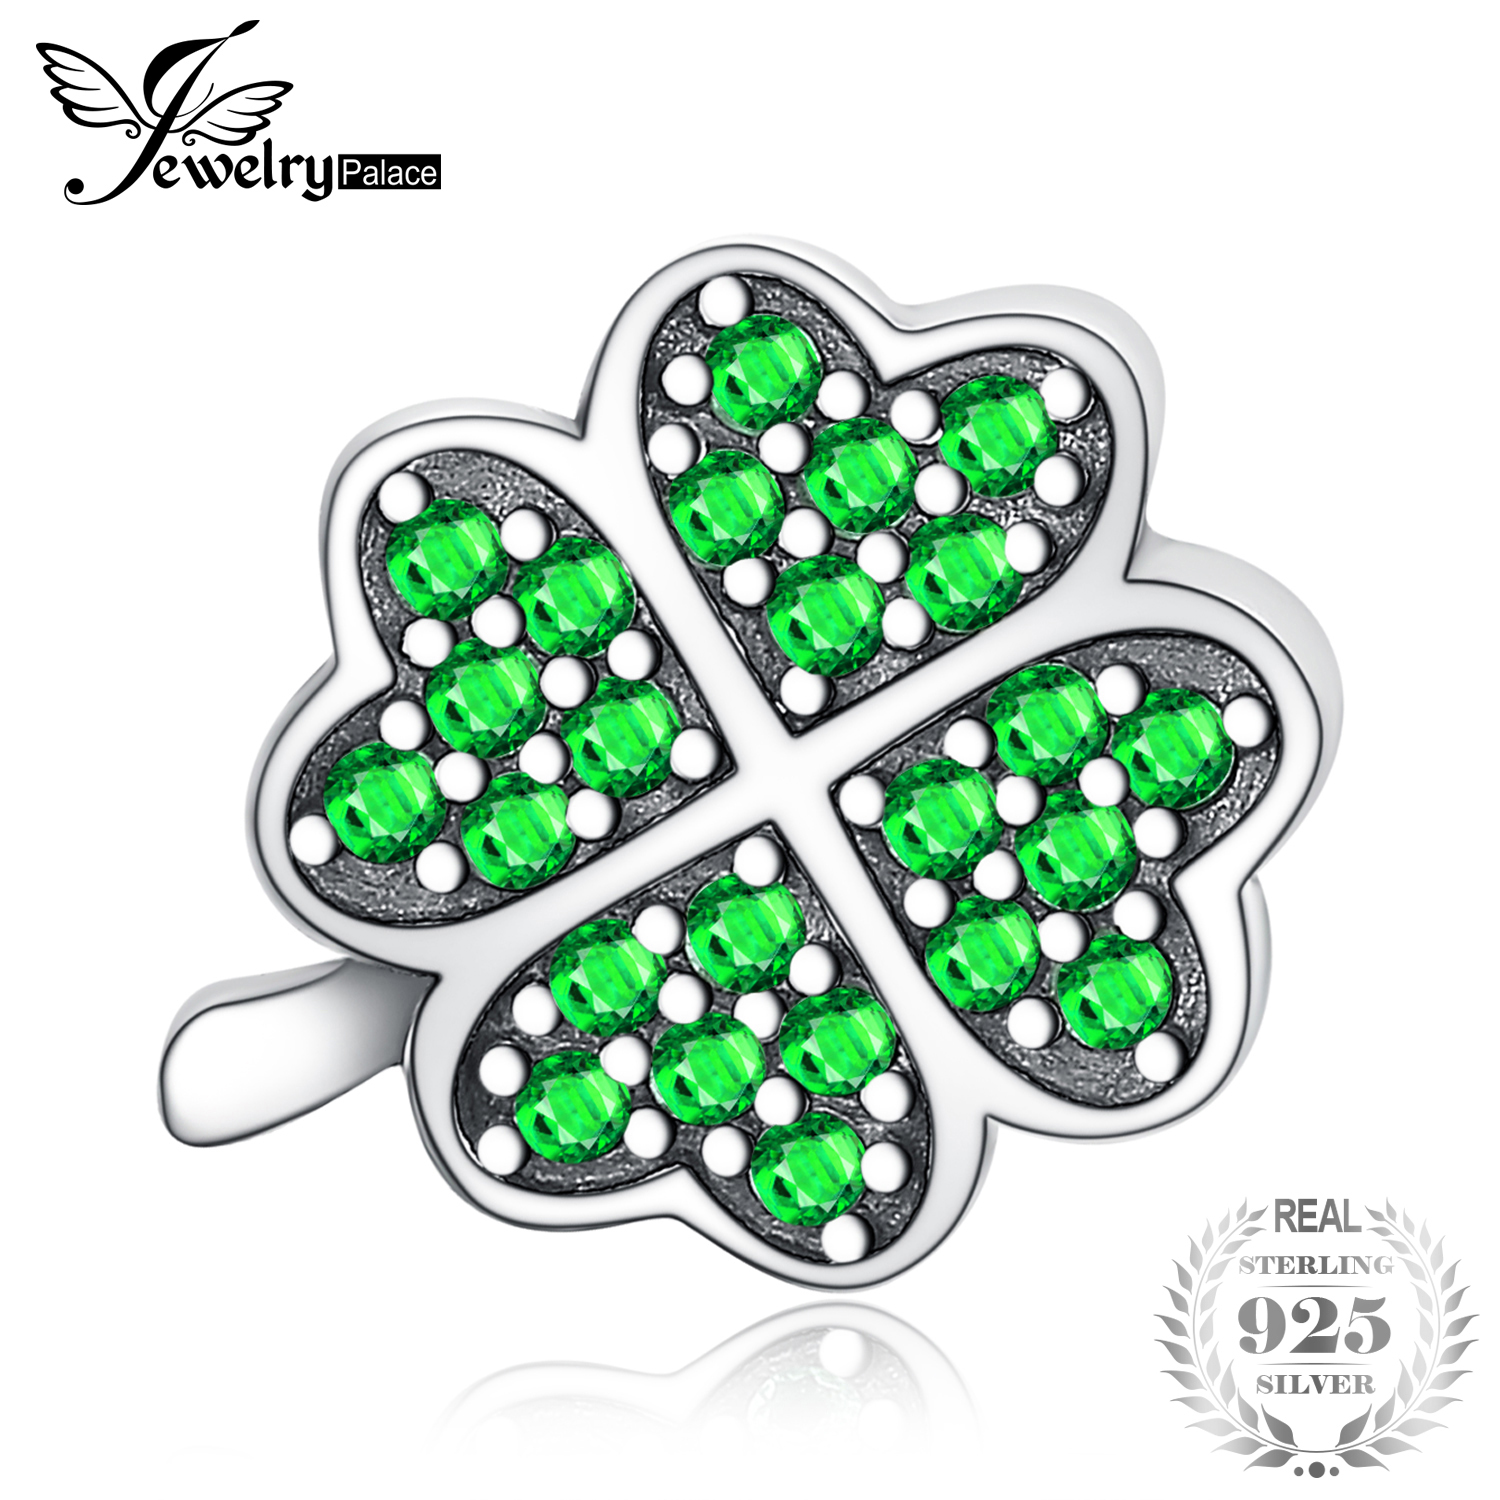 JewelryPalace Luck Irish Clover 0.6ct Green Cubic Zirconia 925 Sterling Silver Charms Beads For Women Fine Jewelry New Hot SaleJewelryPalace Luck Irish Clover 0.6ct Green Cubic Zirconia 925 Sterling Silver Charms Beads For Women Fine Jewelry New Hot Sale